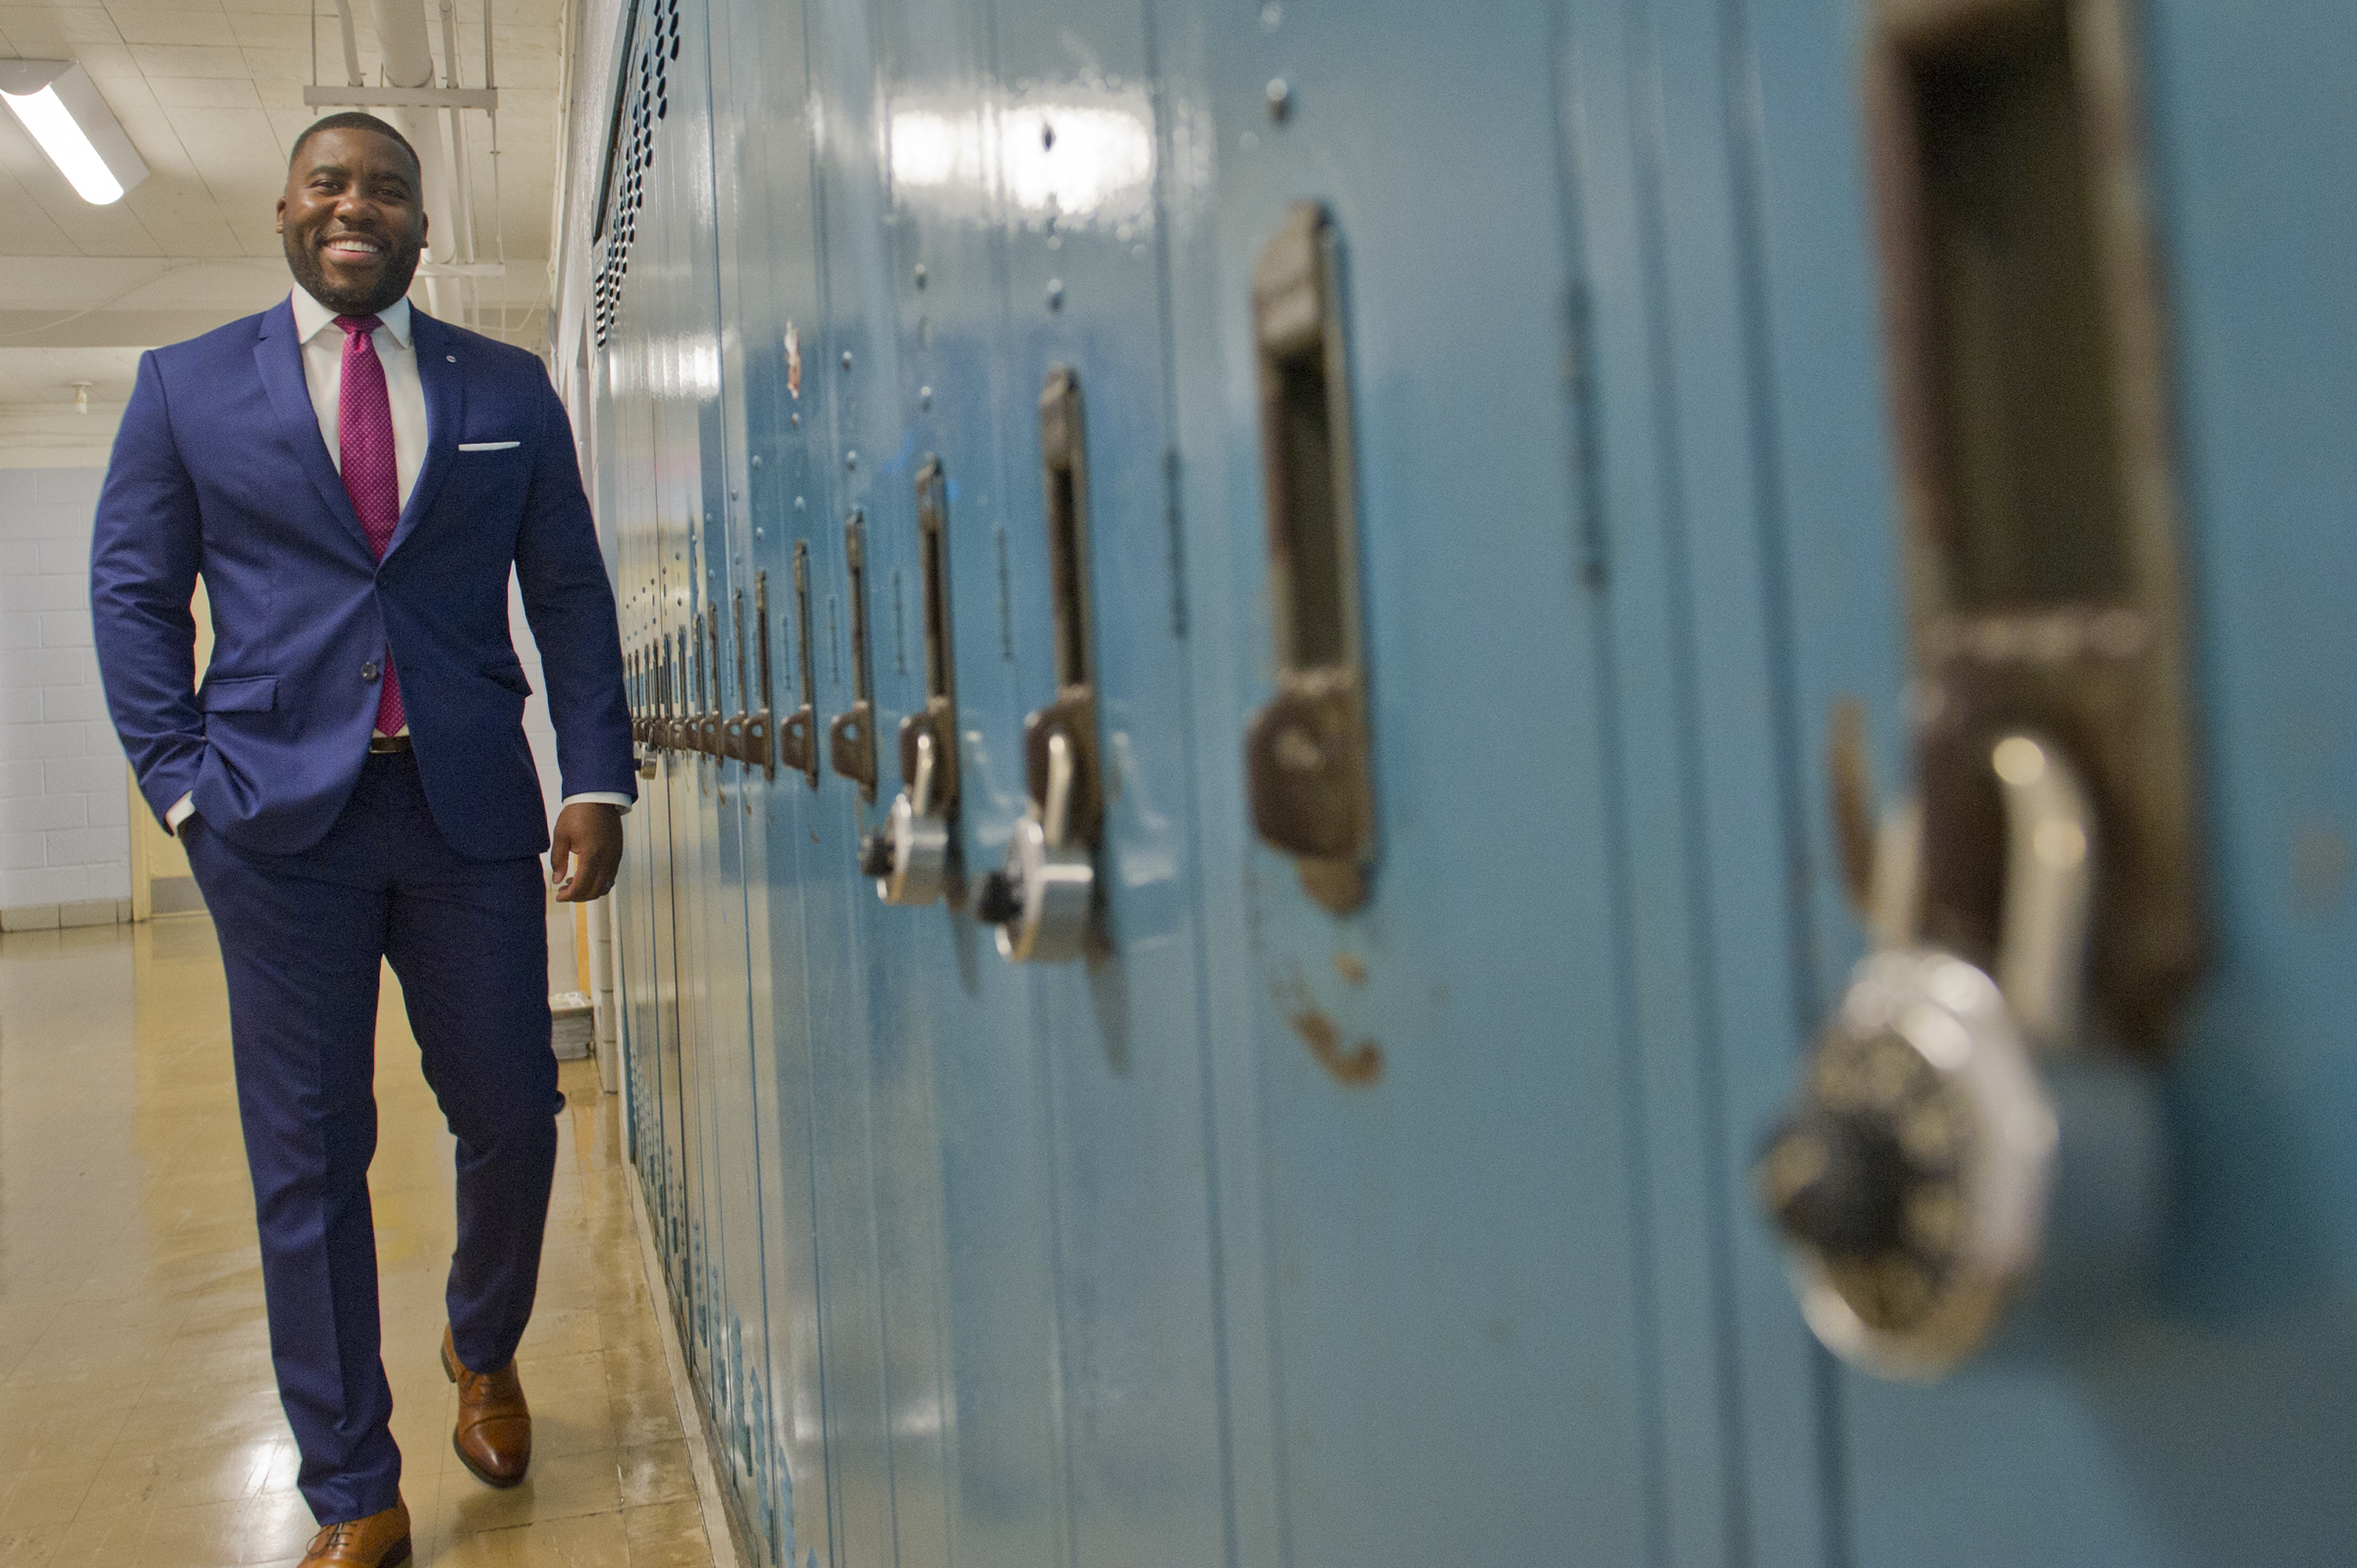 Sports marketing business teacher Howard Brown walks past a bank of lockers down the hall of Northeast High School as he prepares for this fall semester at the Philadelphia school on Friday August 24, 2018. Brown, a former exec at Goldman Sachs, made more money than he knew what to do with. But after living the high life in NYC he realized that money isn�t everything. Now, he�s back home in Philly and about to begin his second year teaching 11th and 12th graders. Avi Steinhardt / For the Inquirer